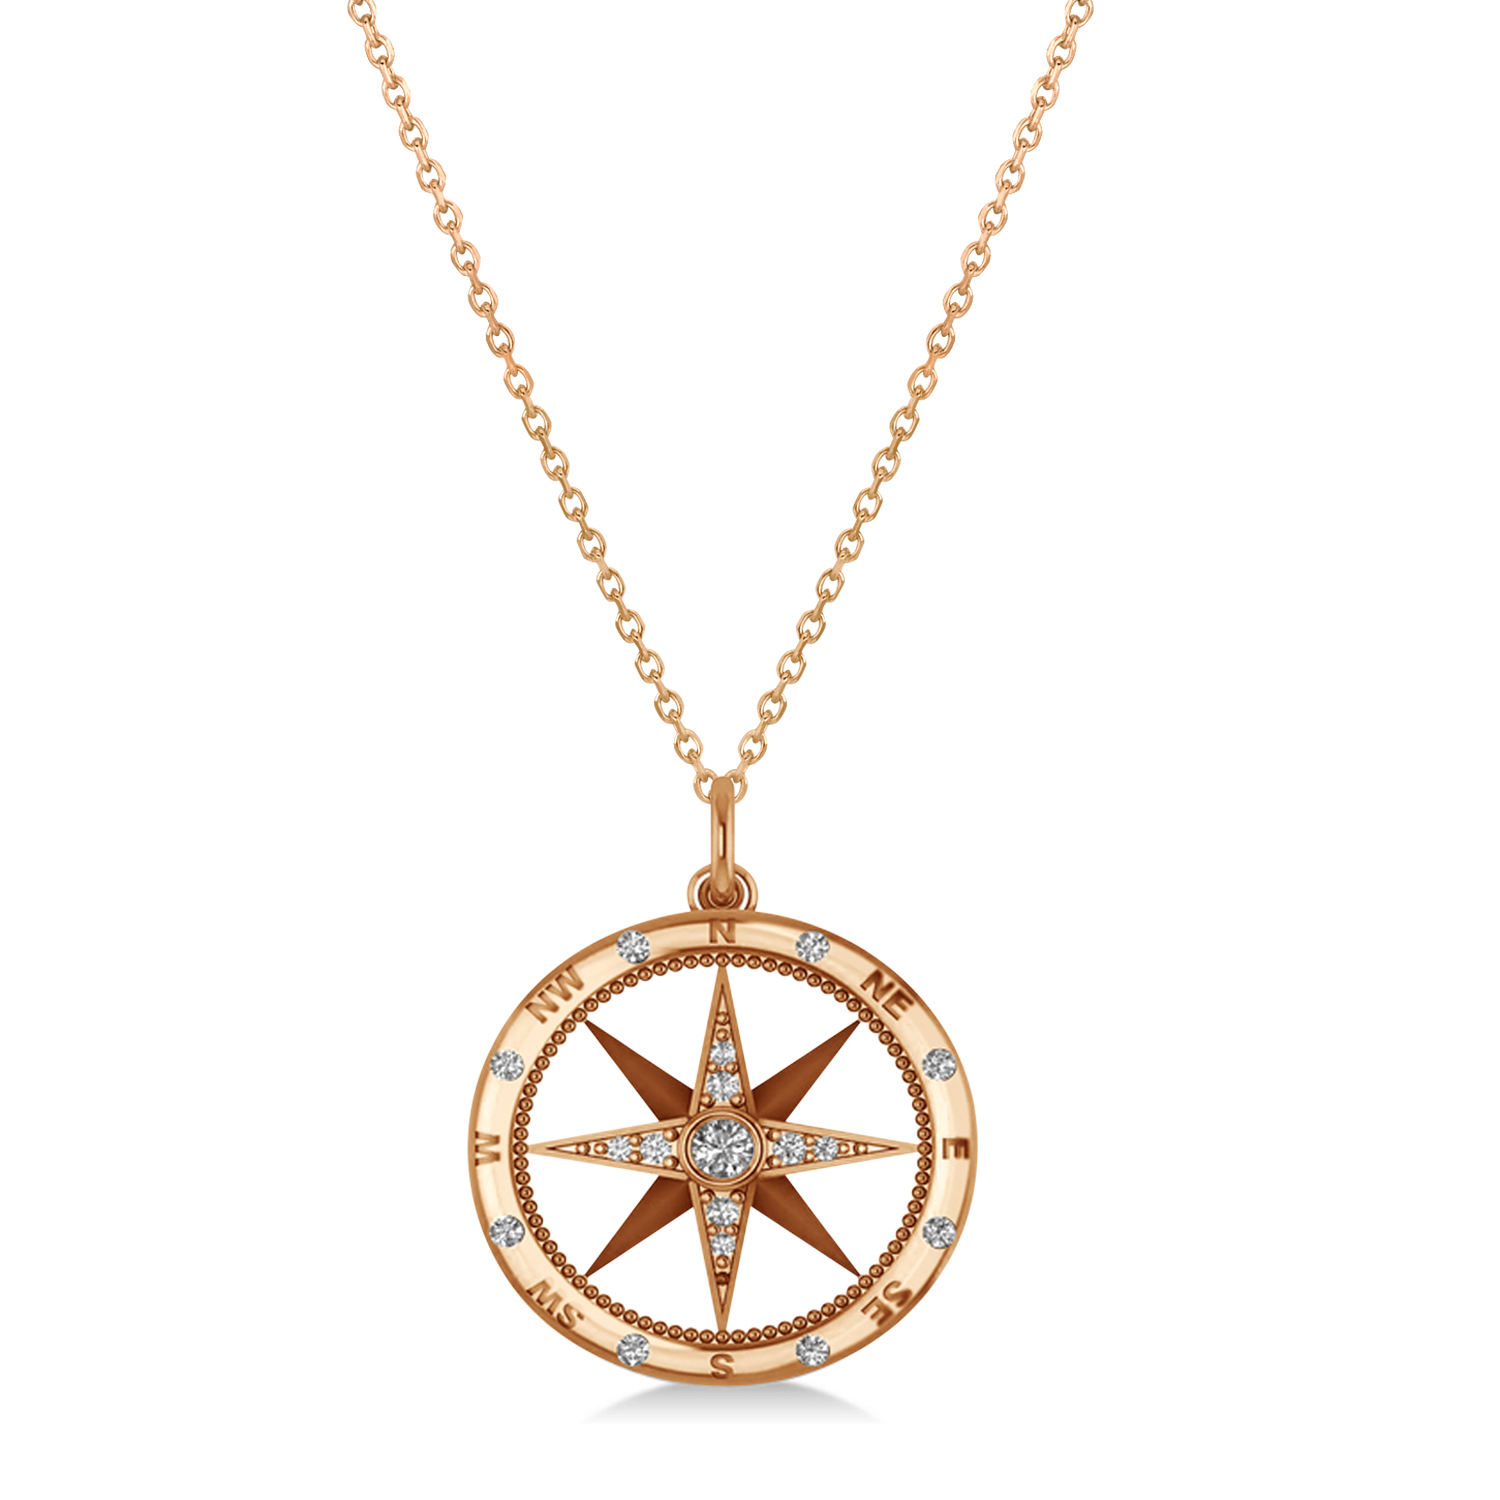 Compass Necklace Pendant Diamond Accented 18k Rose Gold 0